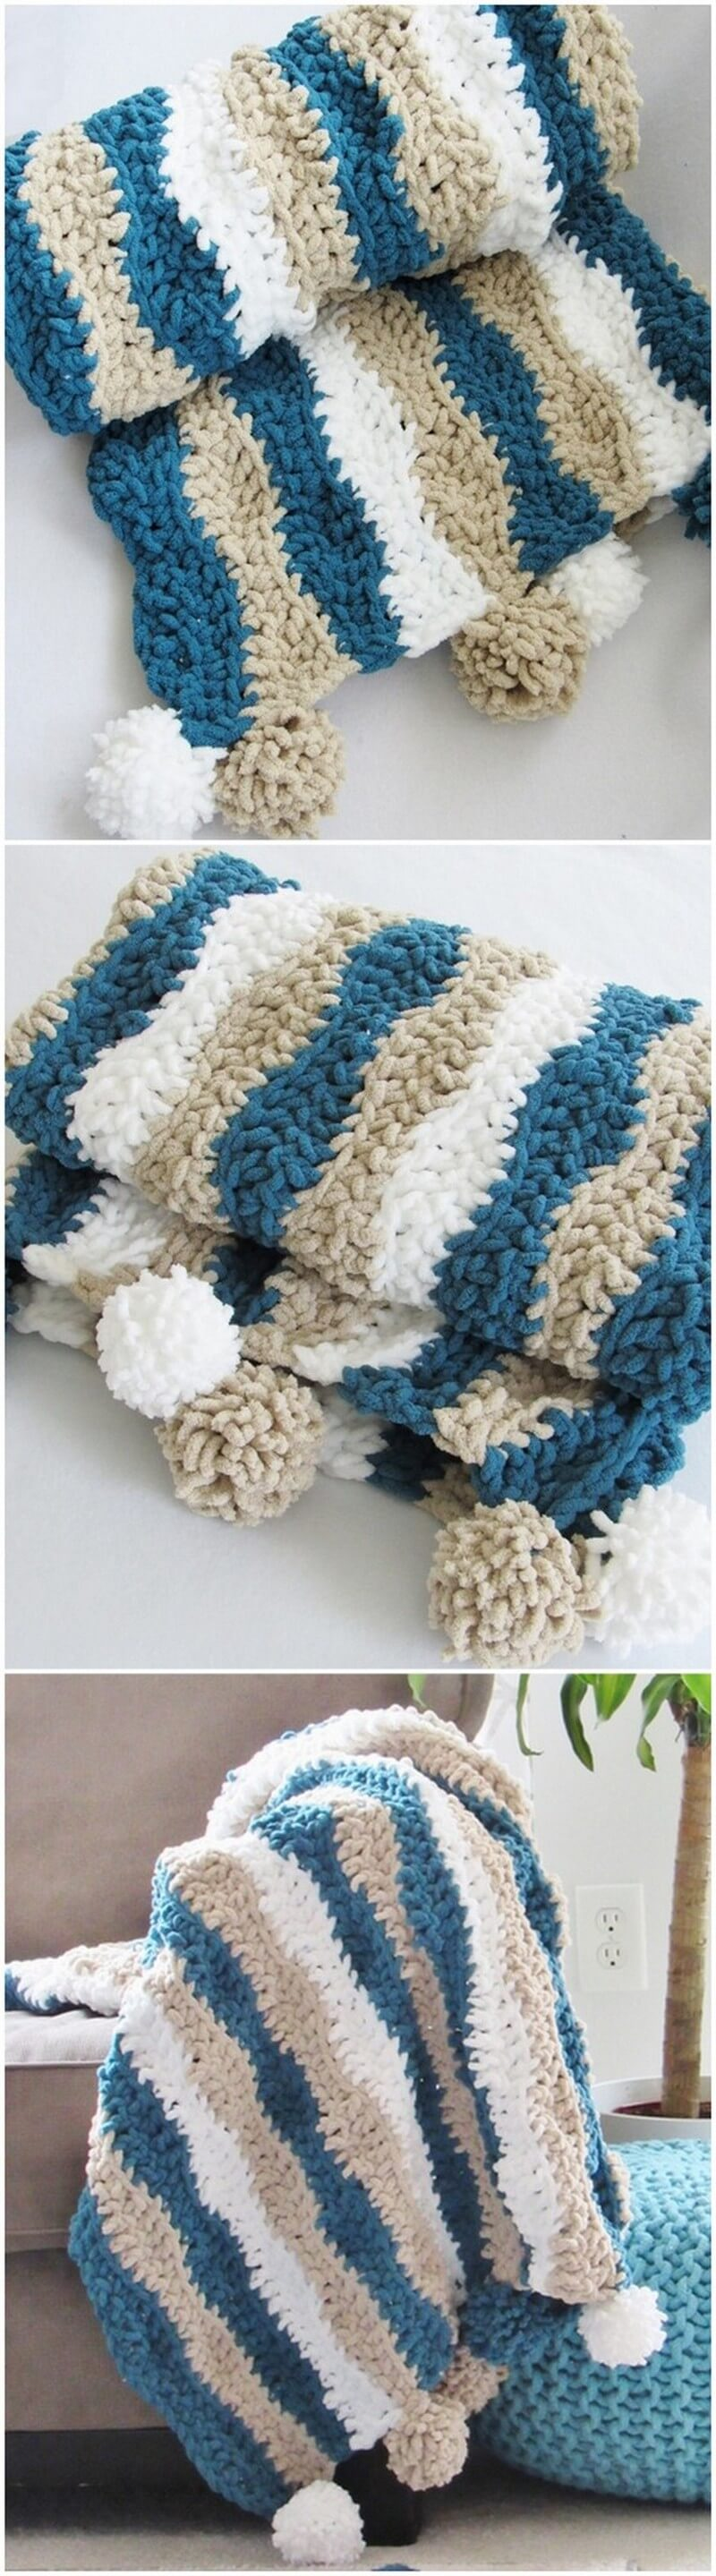 Easy Crochet Blanket Pattern (21)